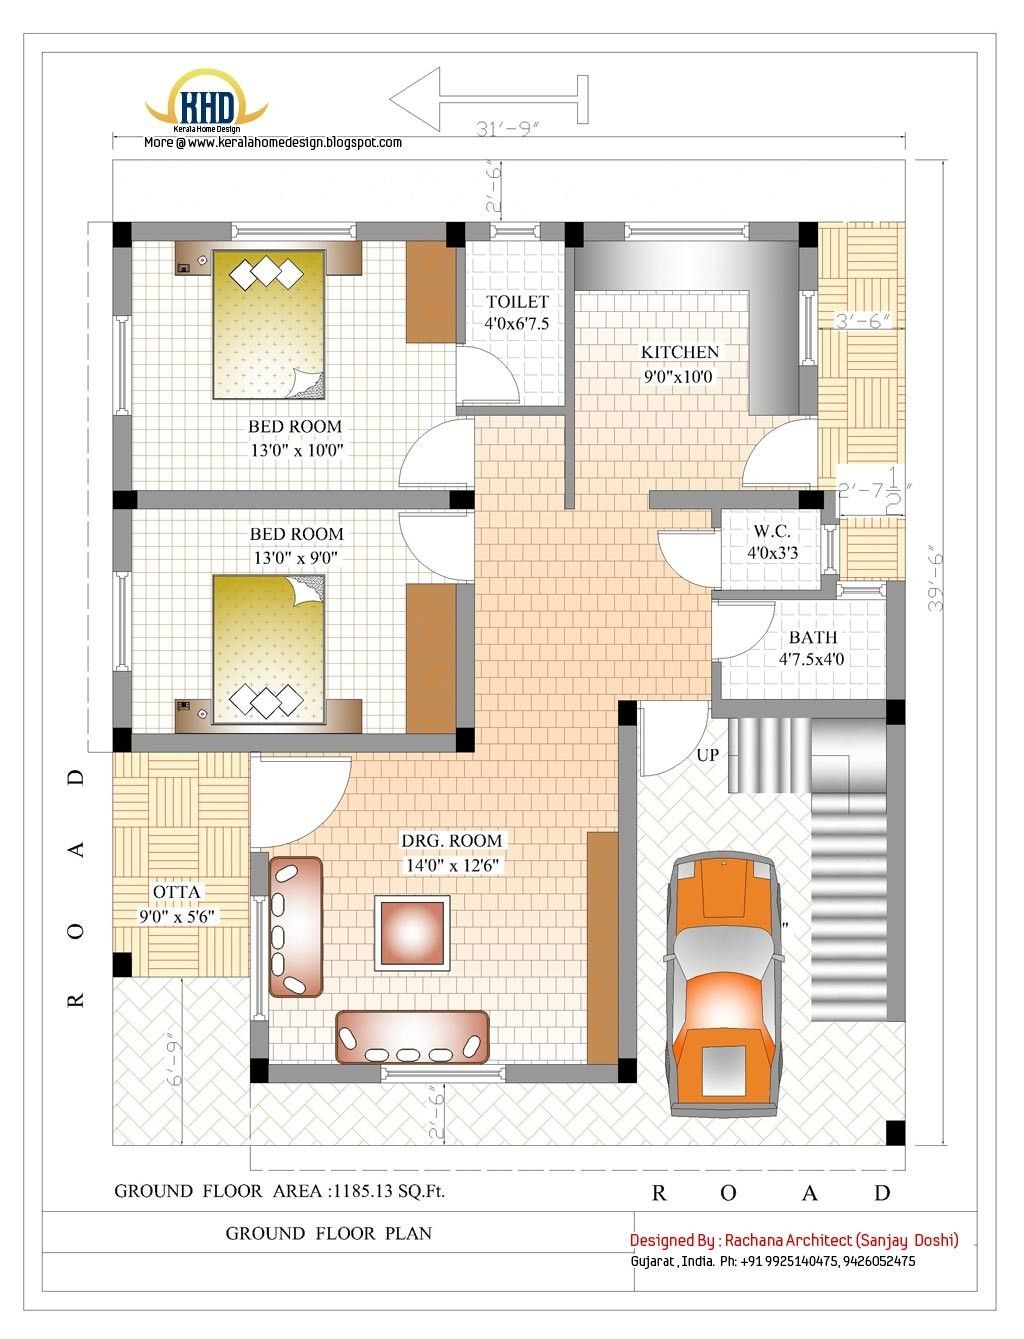 South African House Plans Design An Absolute Dream Utility Collective In 2020 Small House Plans Indian House Plans House Floor Plans